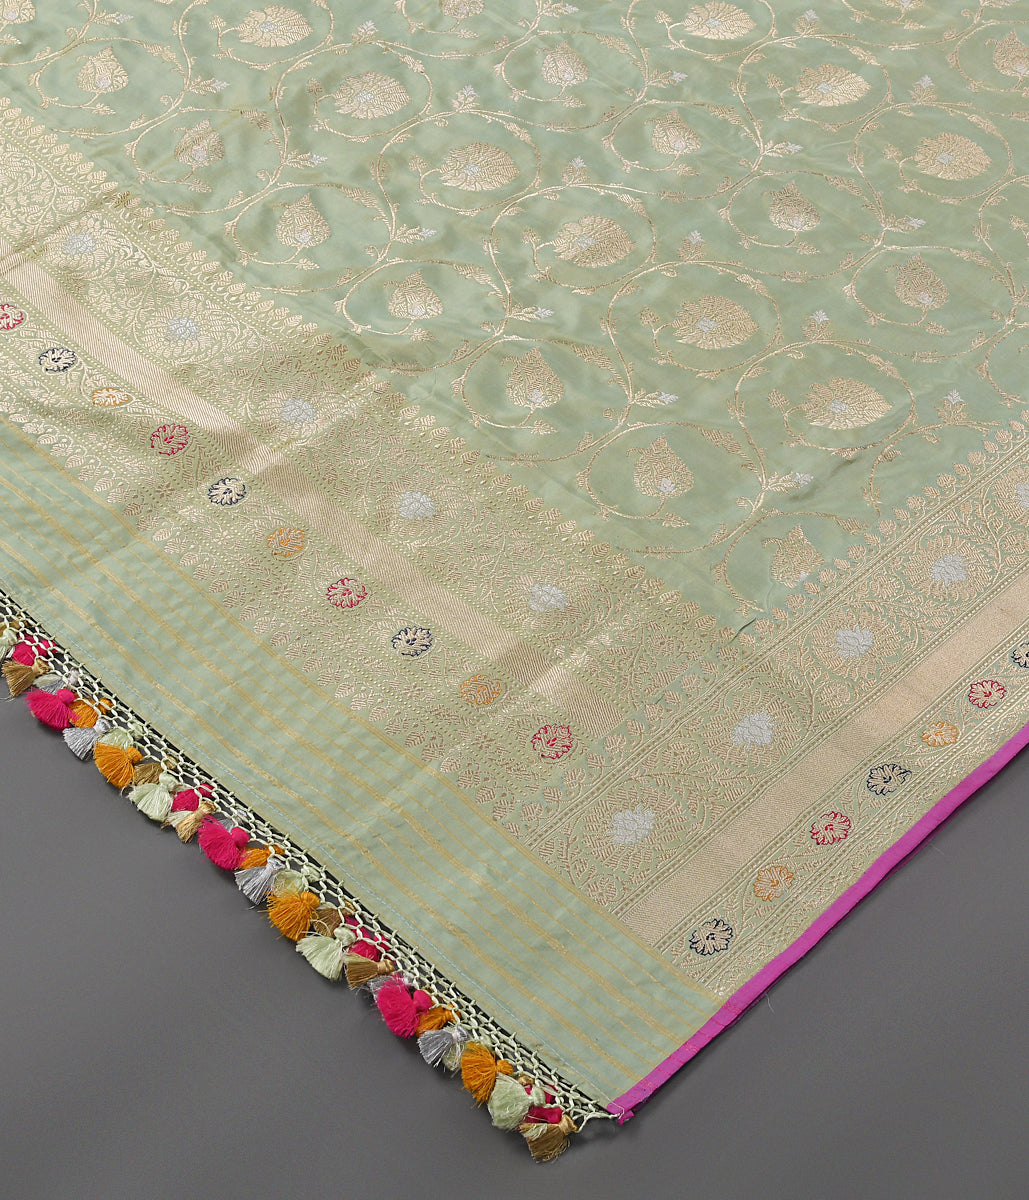 Handwoven Light Green Kadhwa Jangla Dupatta